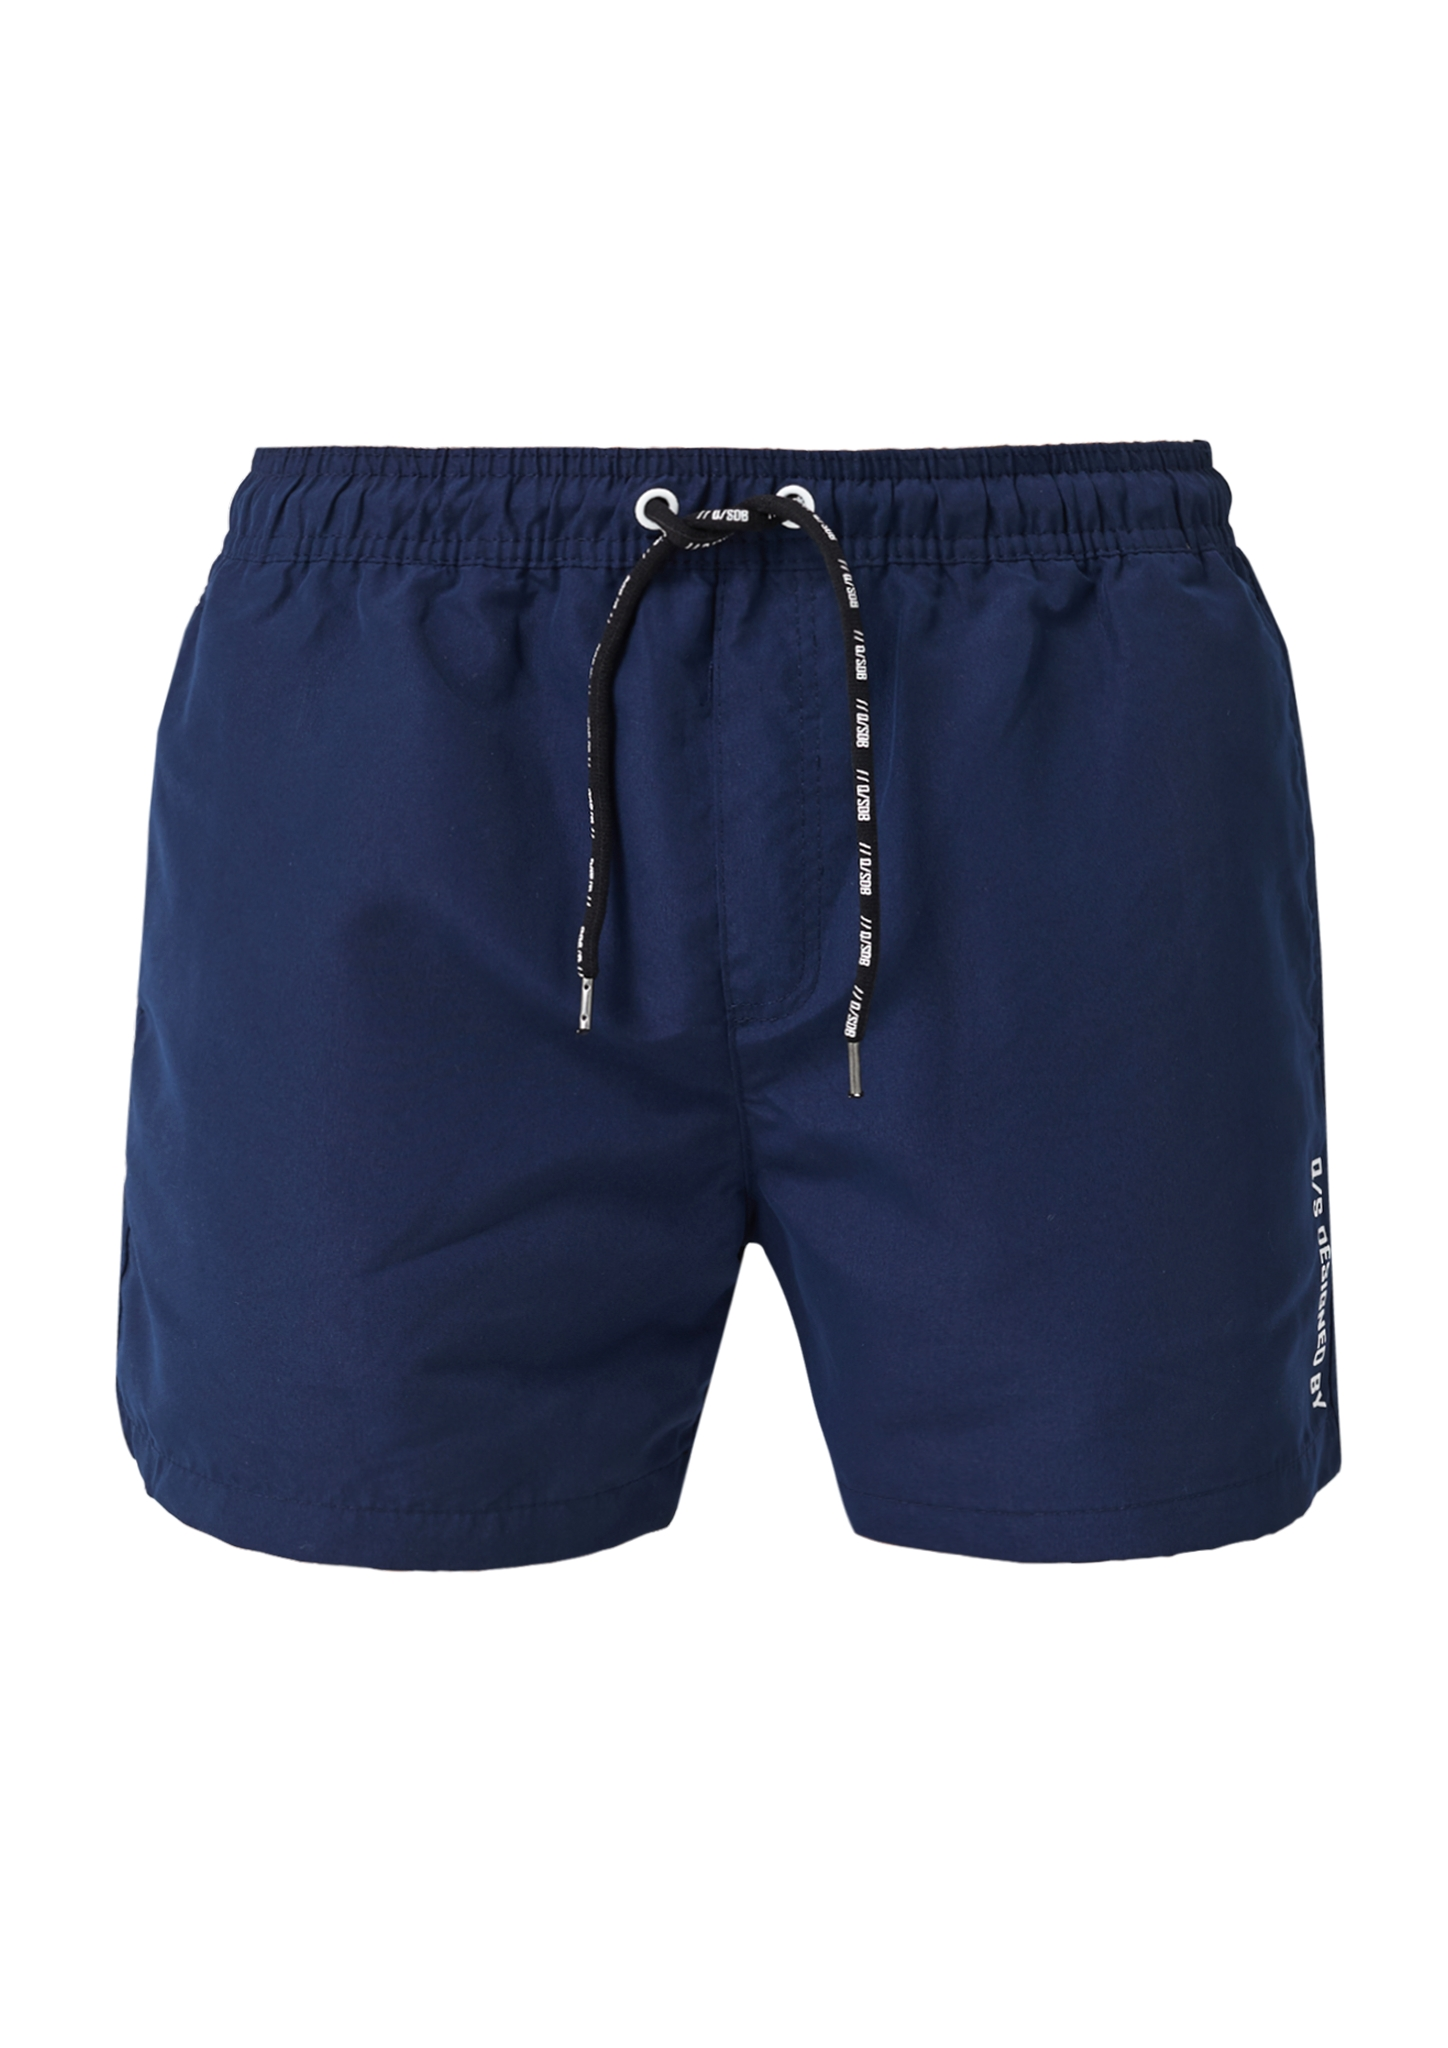 Badehose | Bekleidung > Bademode | Blau | Oberstoff: 100% polyester| futter: 100% polyester | Q/S designed by